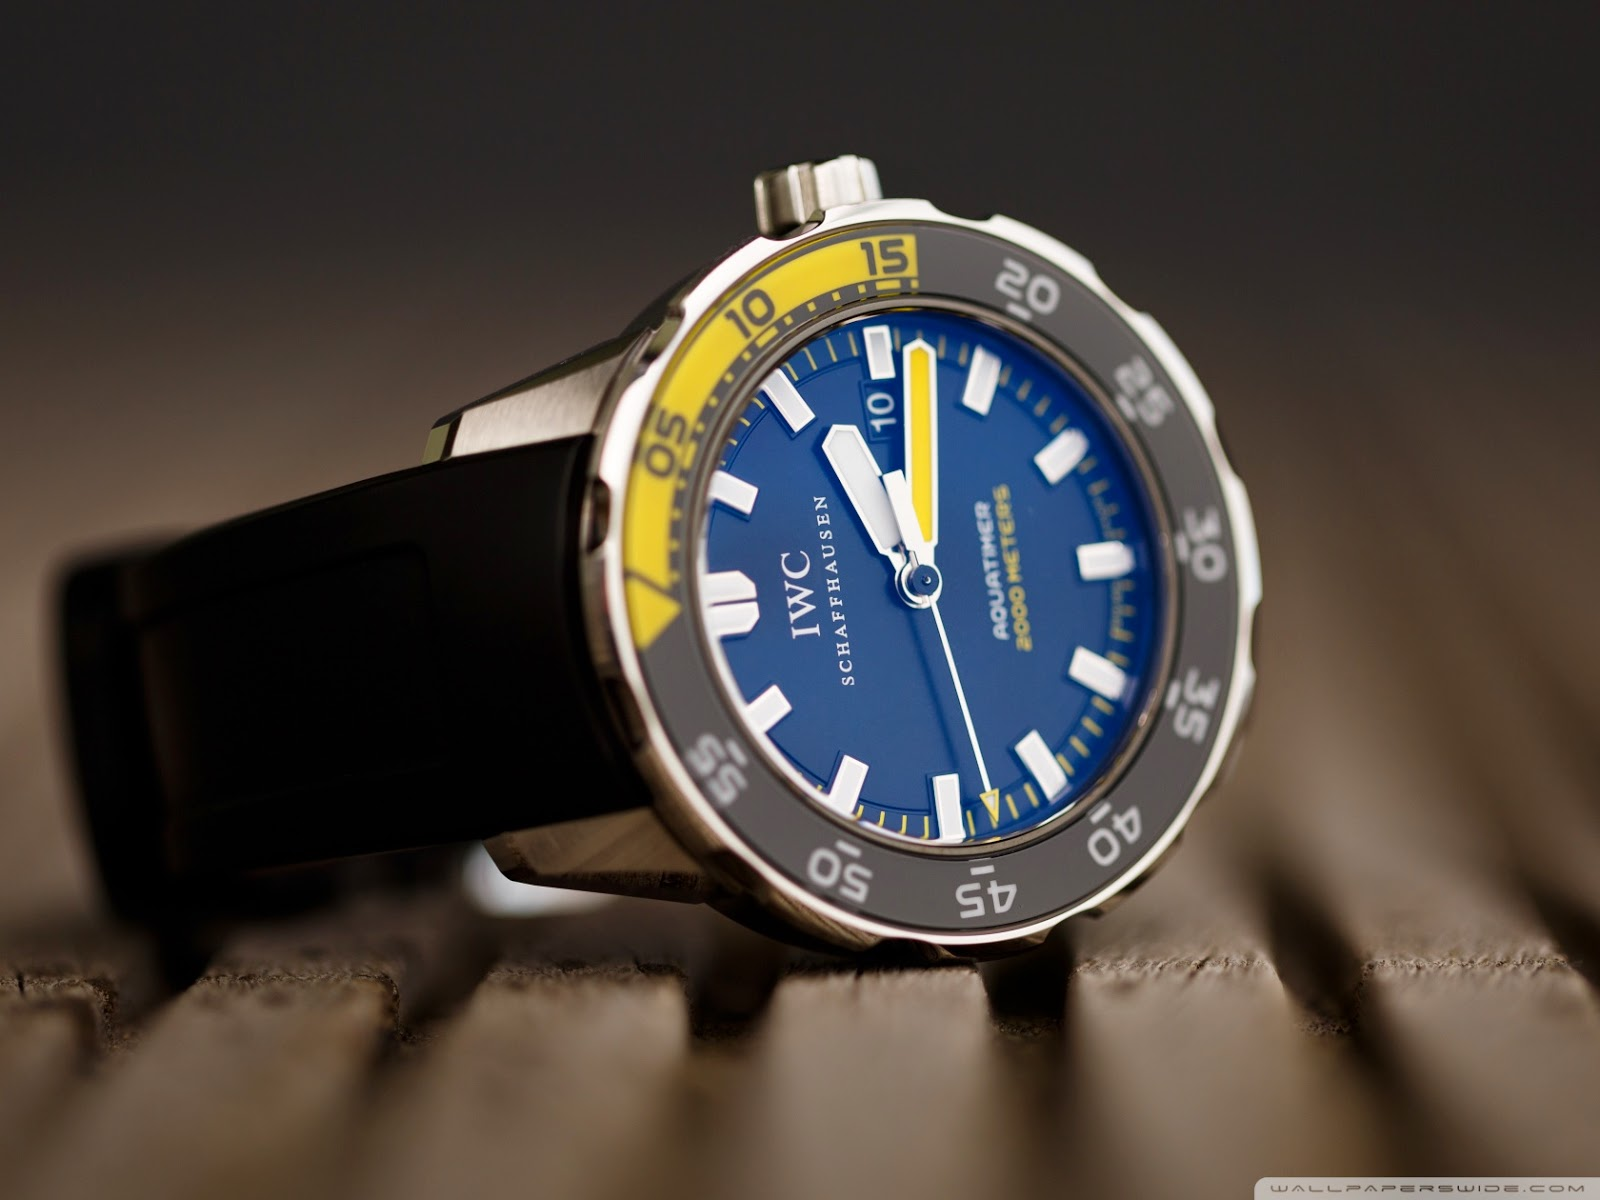 iwc aquatimer_2000 wallpaper-1680x1260